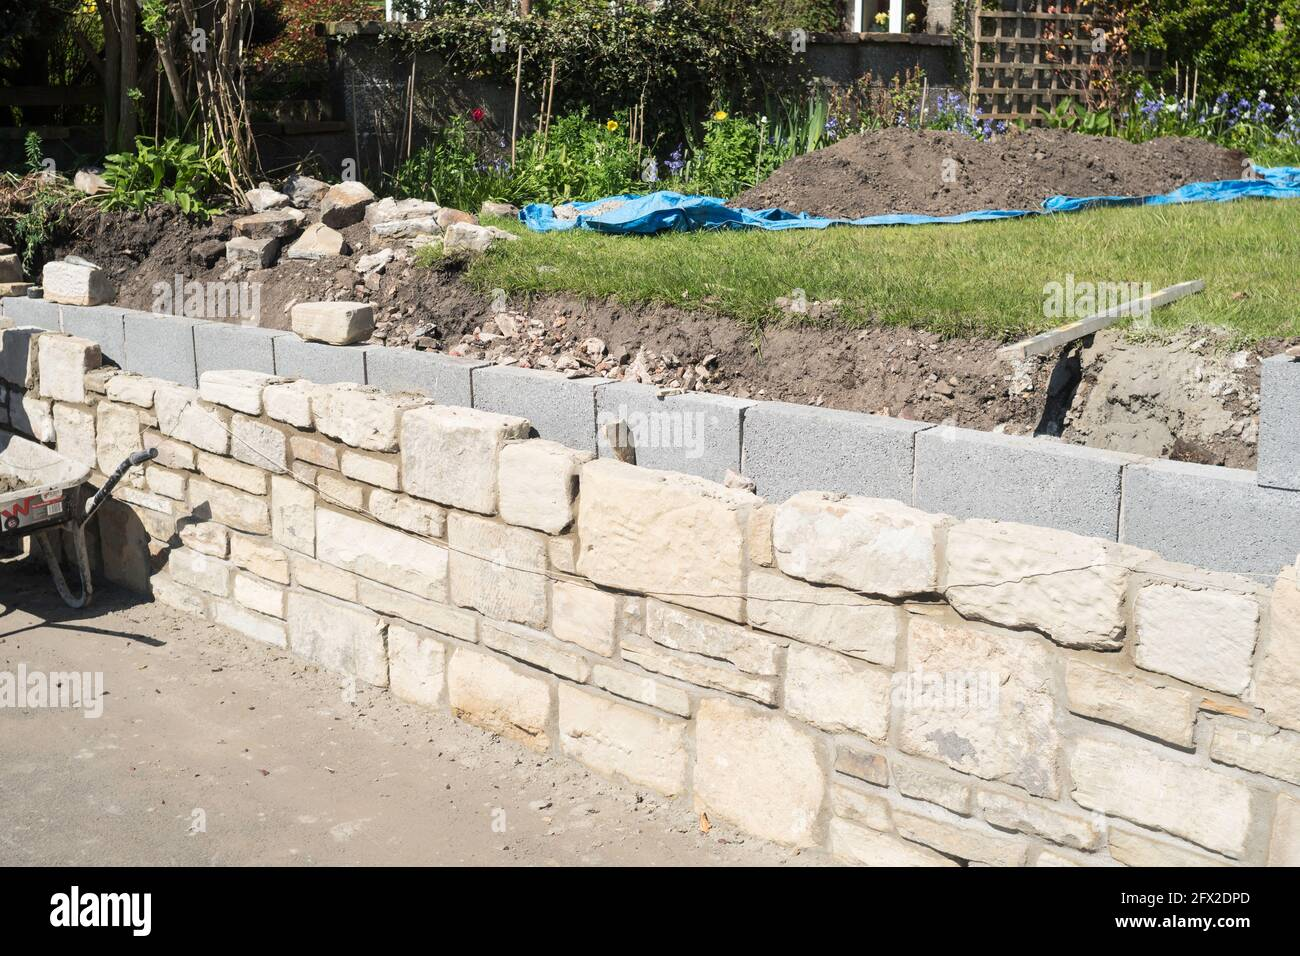 Retaining Wall Garden High Resolution Stock Photography and Images ...